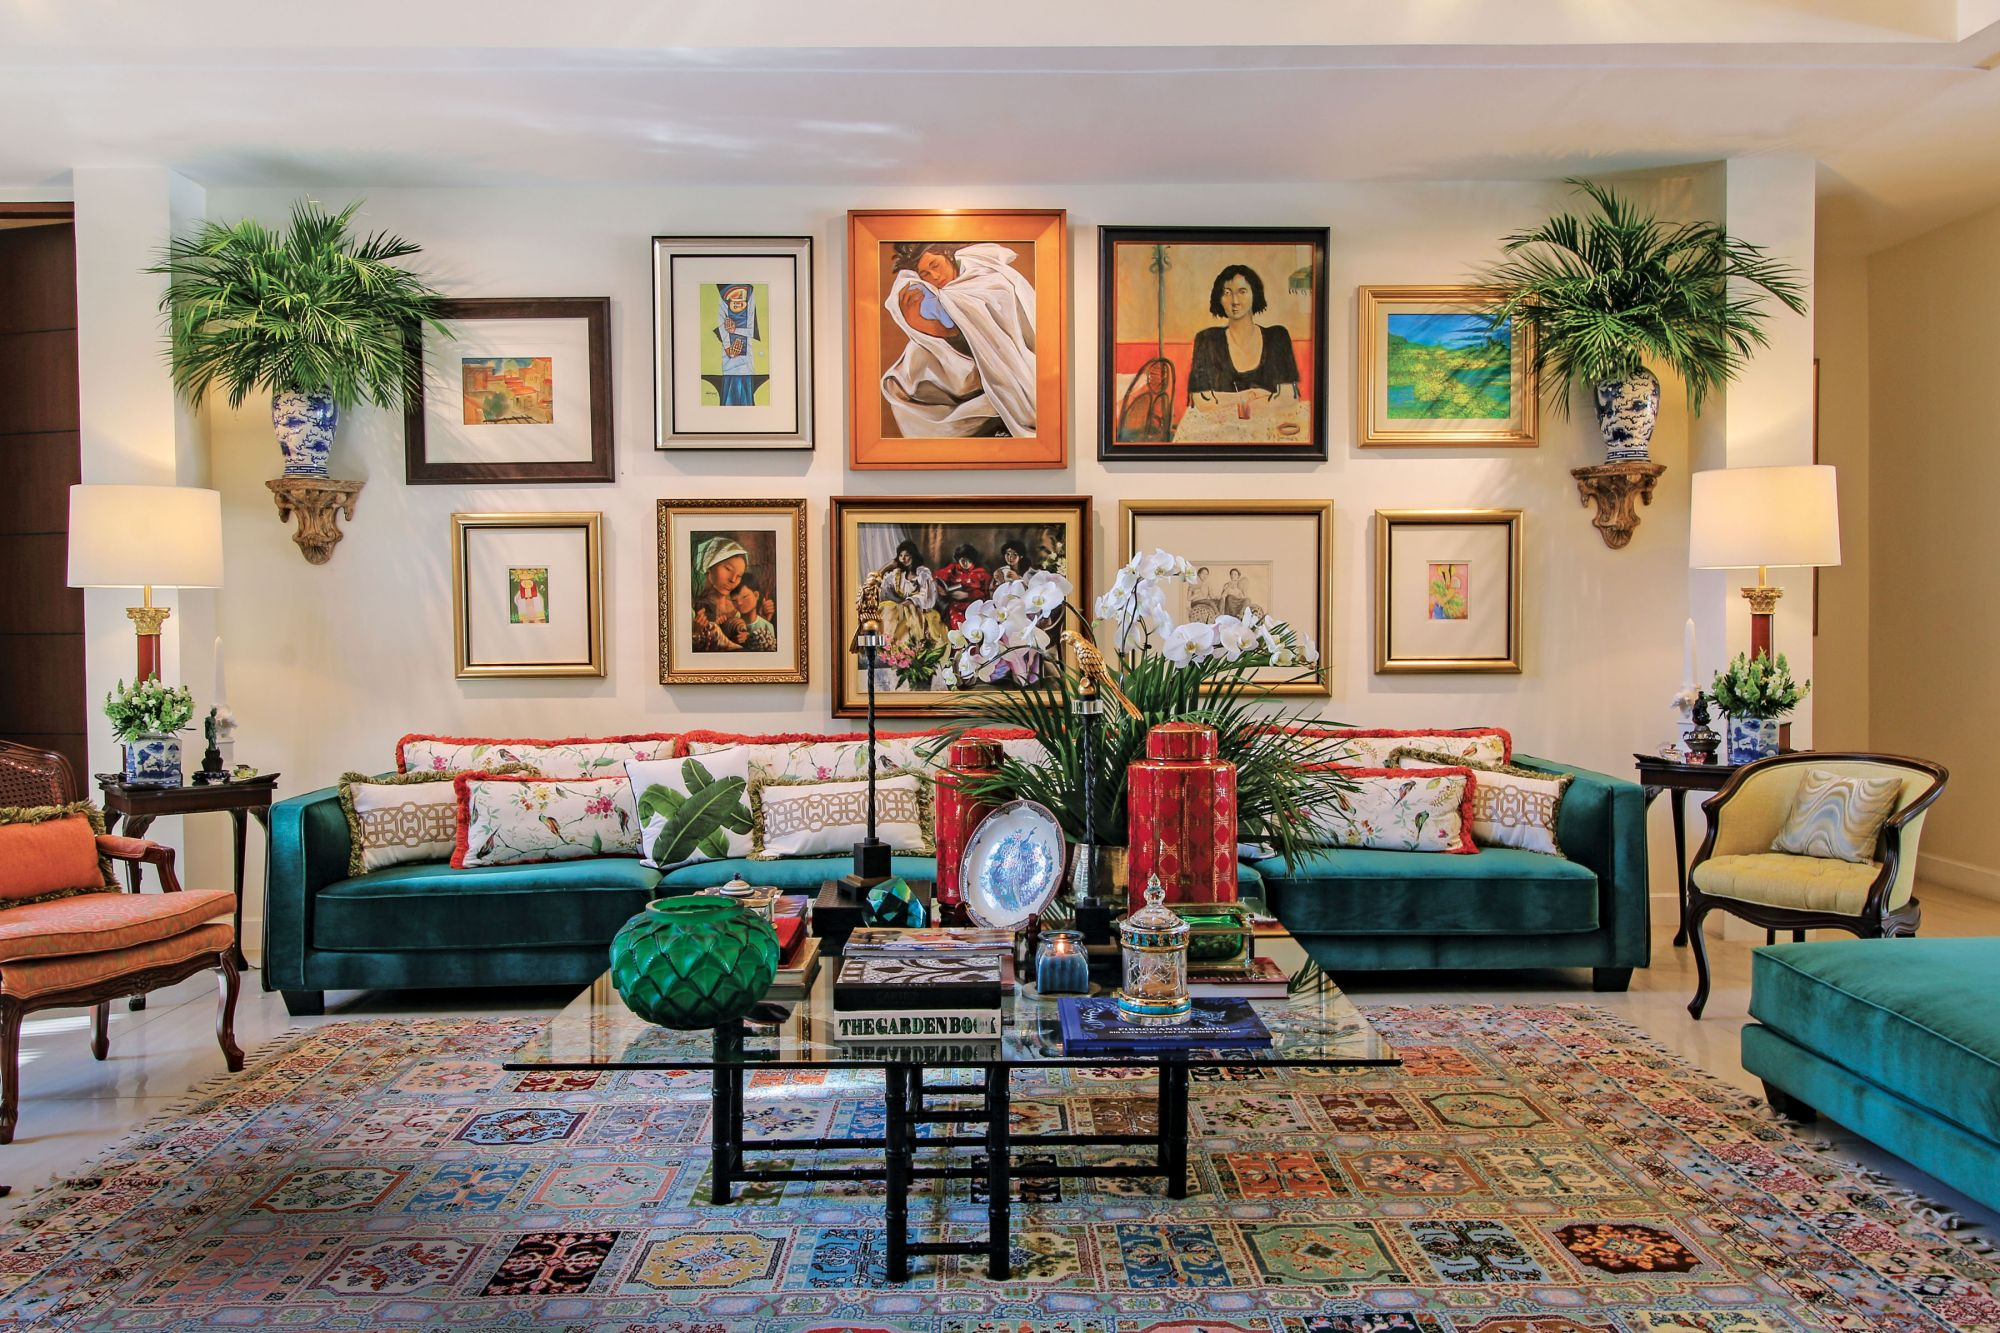 A Look Inside Maritess And Renato Enriquez S Colourful New Home Tatler Philippines